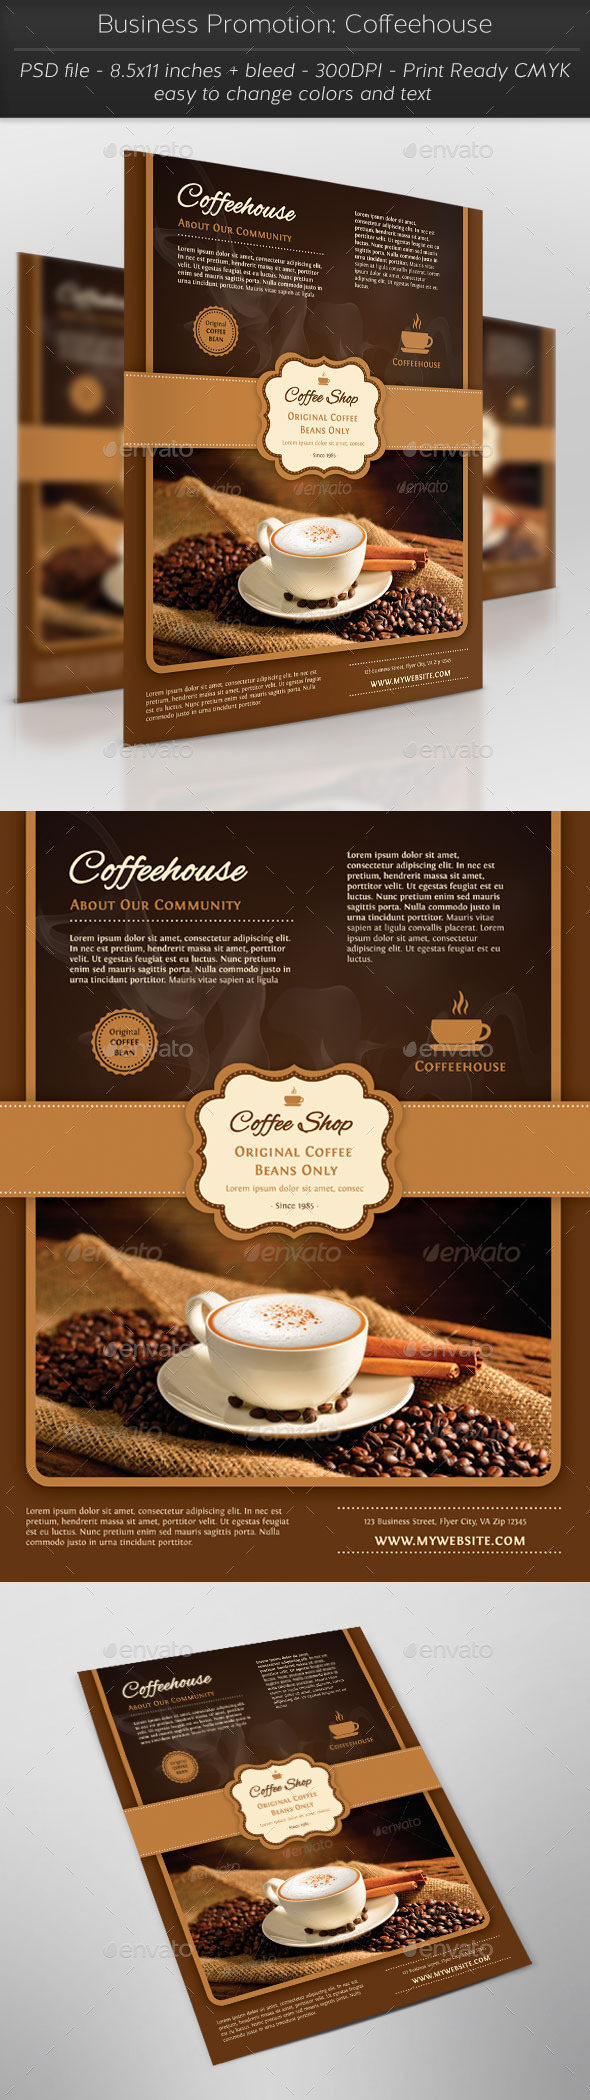 Business Promotion: Coffeehouse - Restaurant Flyers